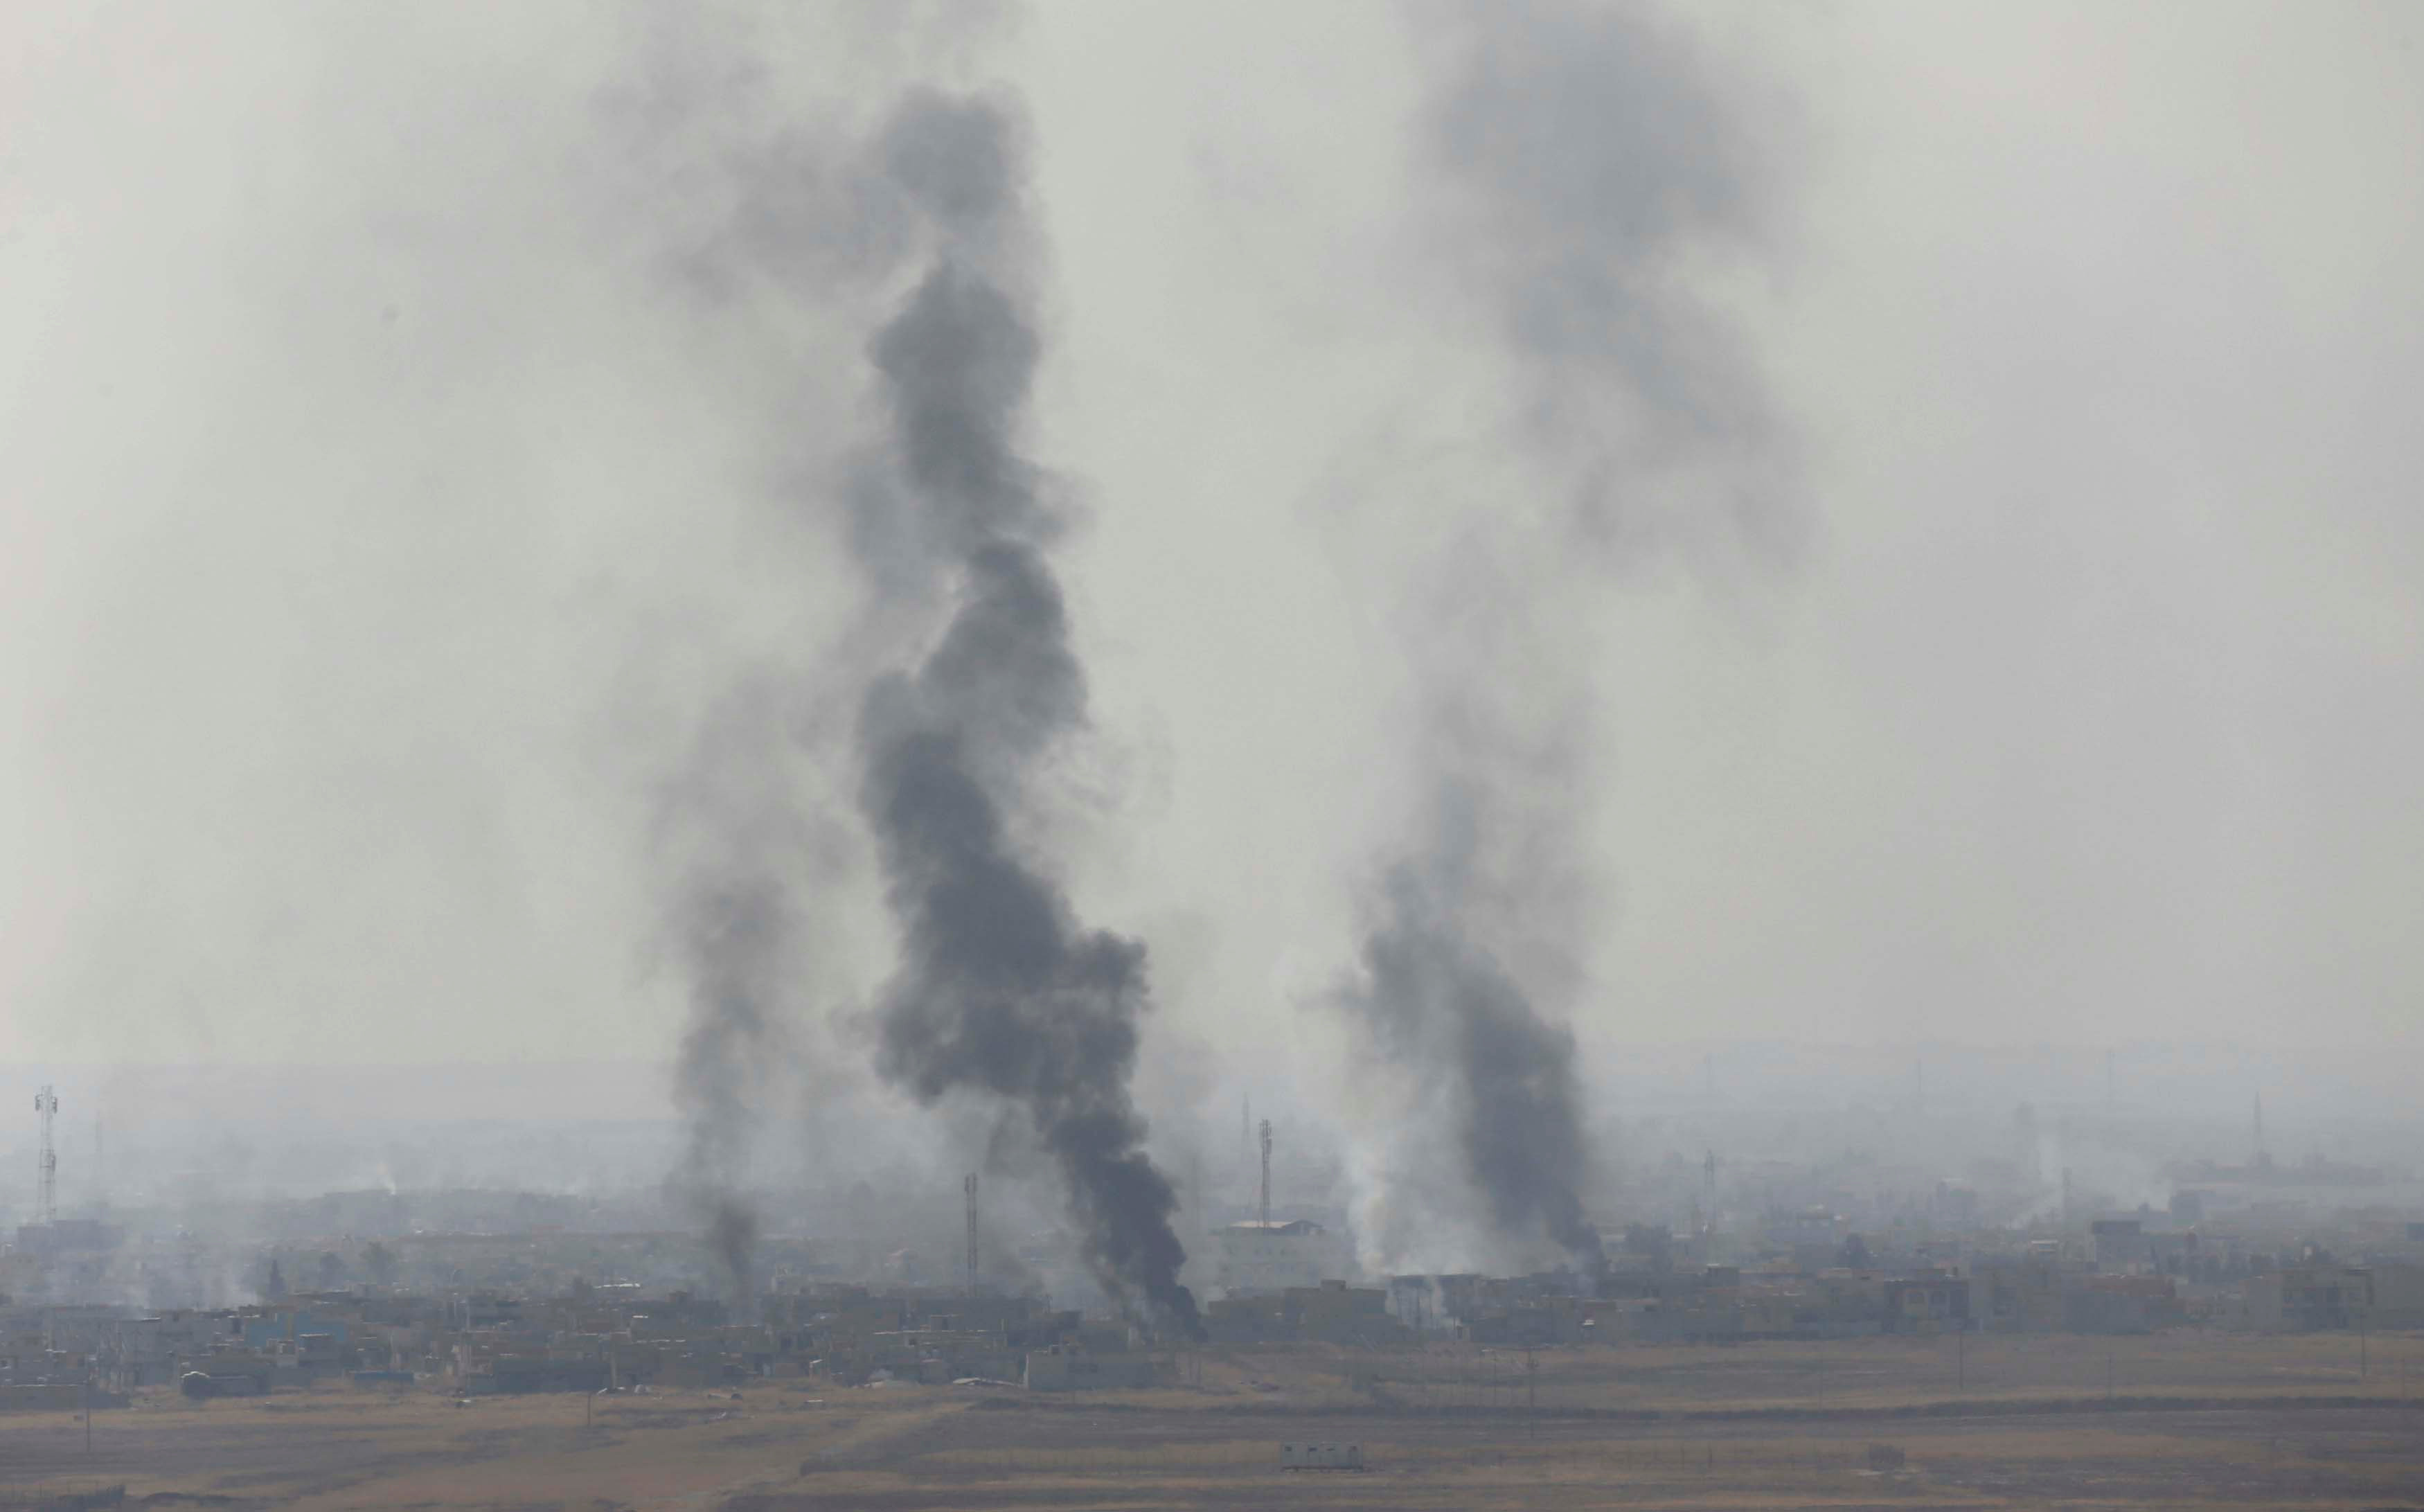 Smoke rises from clashes at Bartila in the east of Mosul during clashes with Islamic State militants, Iraq.